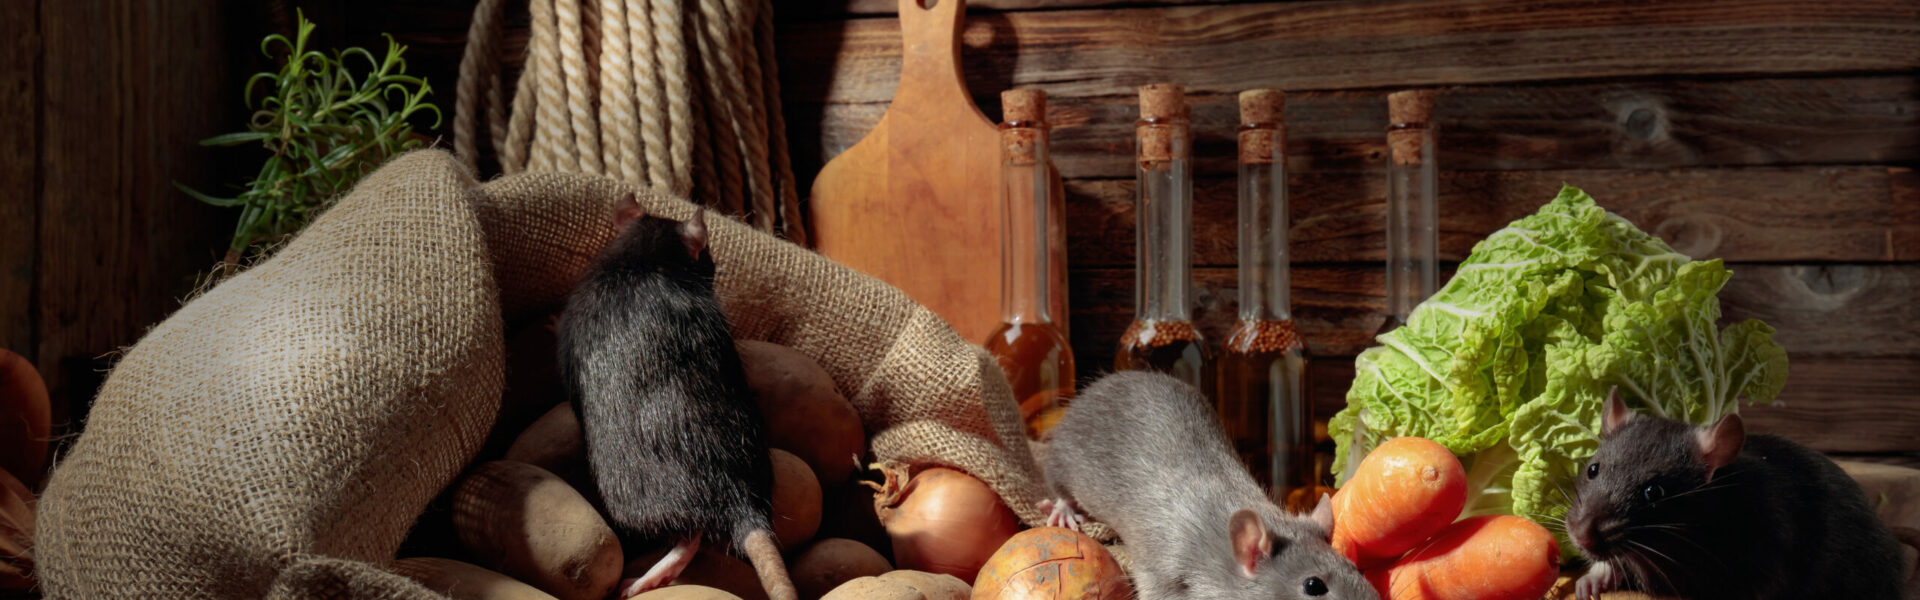 Rats on a old wooden table with vegetables and kitchen utensils.